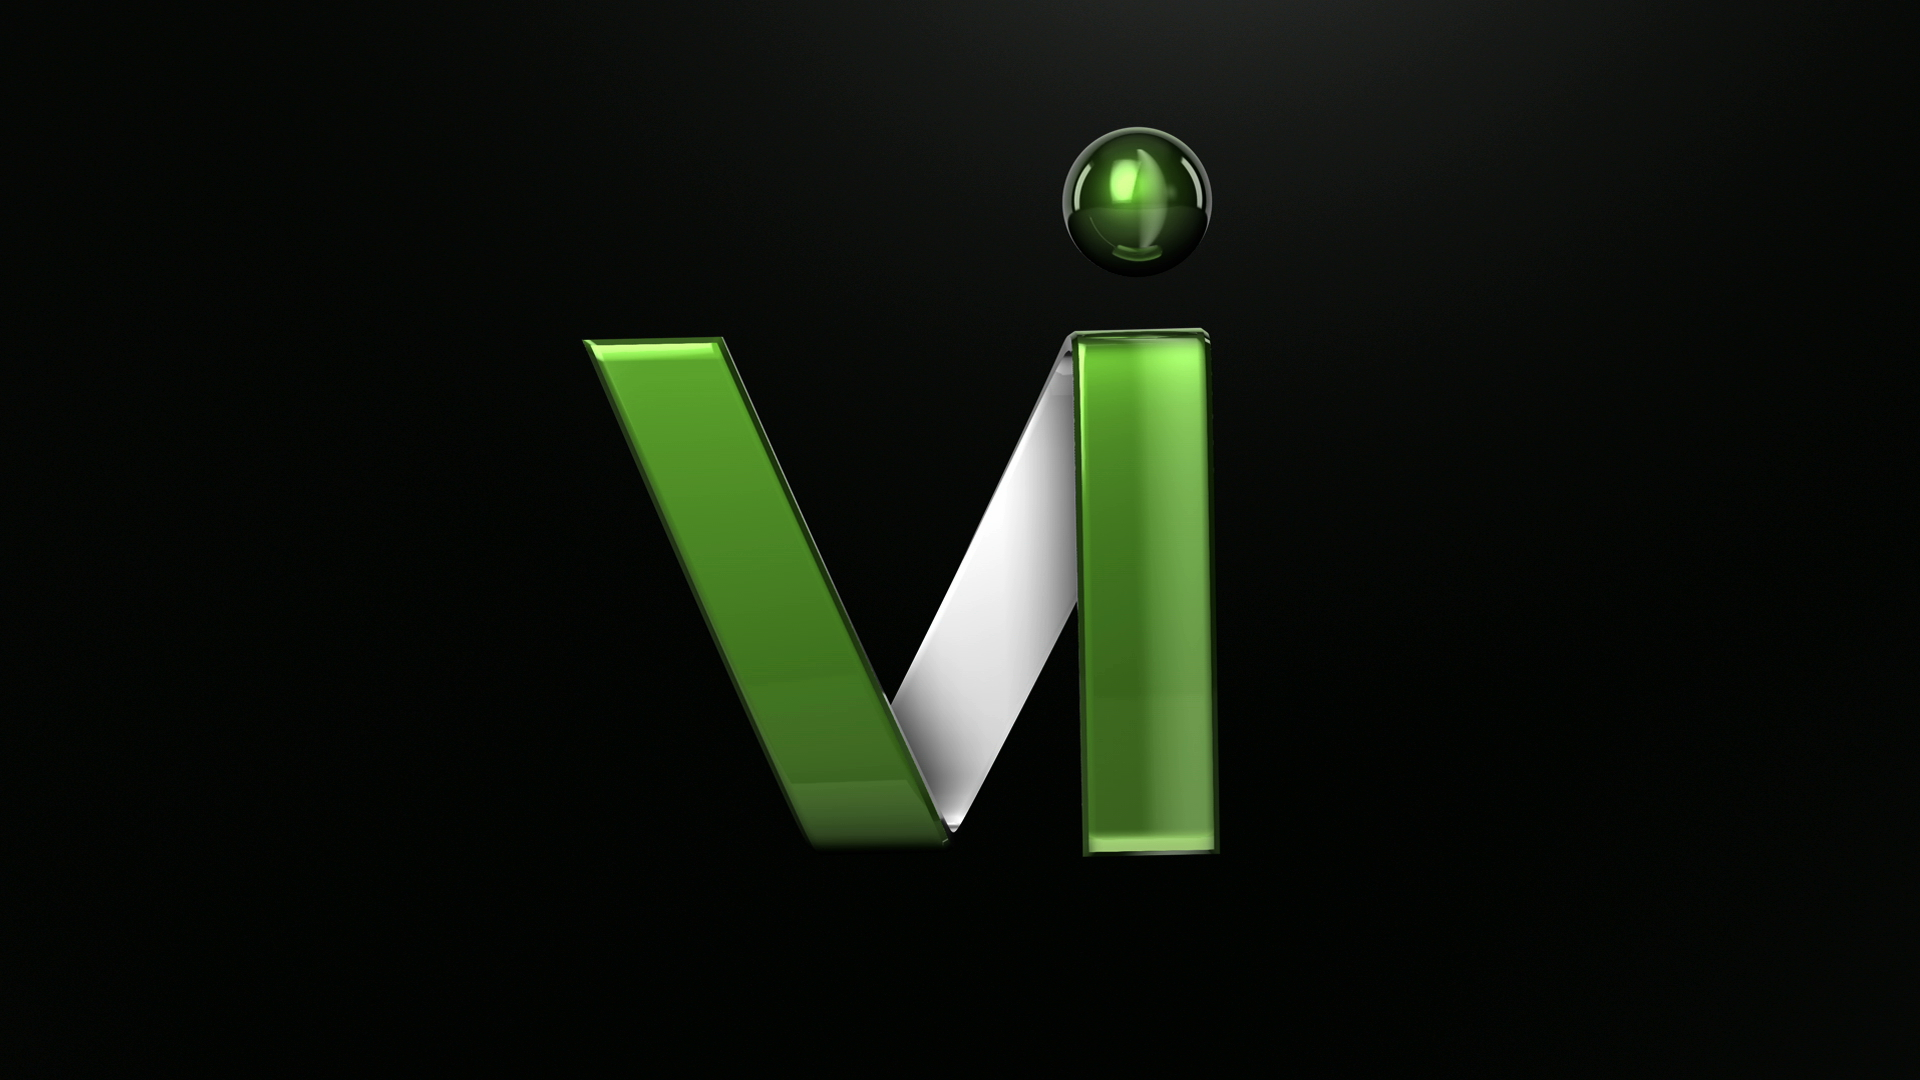 ViSalus Vi 5 Star Ambassador GJ Reynolds Discusses His